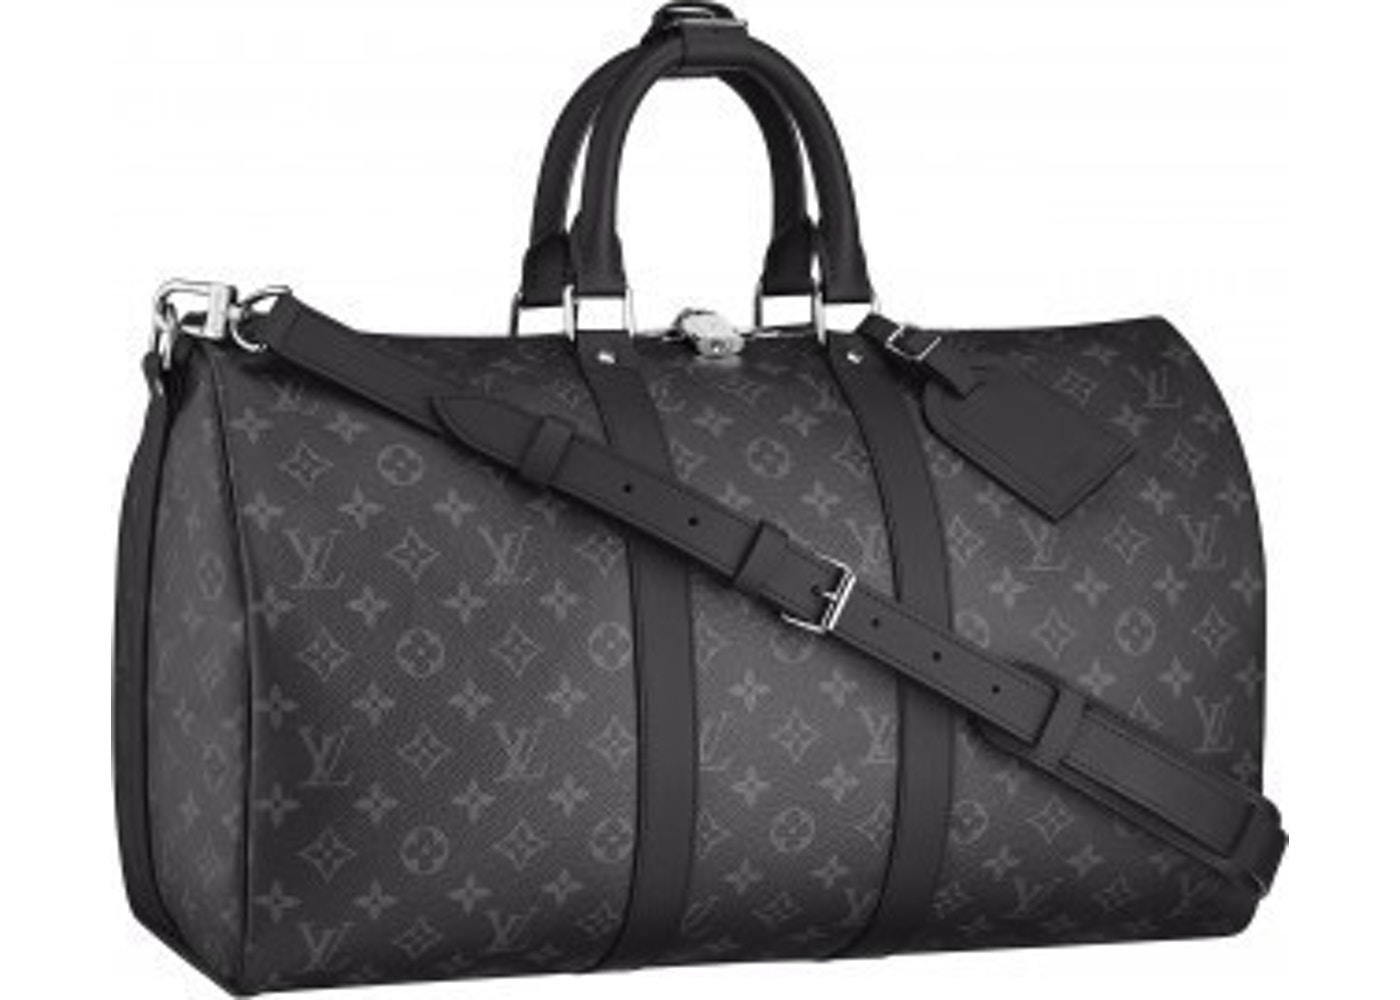 Louis Vuitton Keepall Bandouliere Monogram Eclipse 55 Black Gray With Accessories